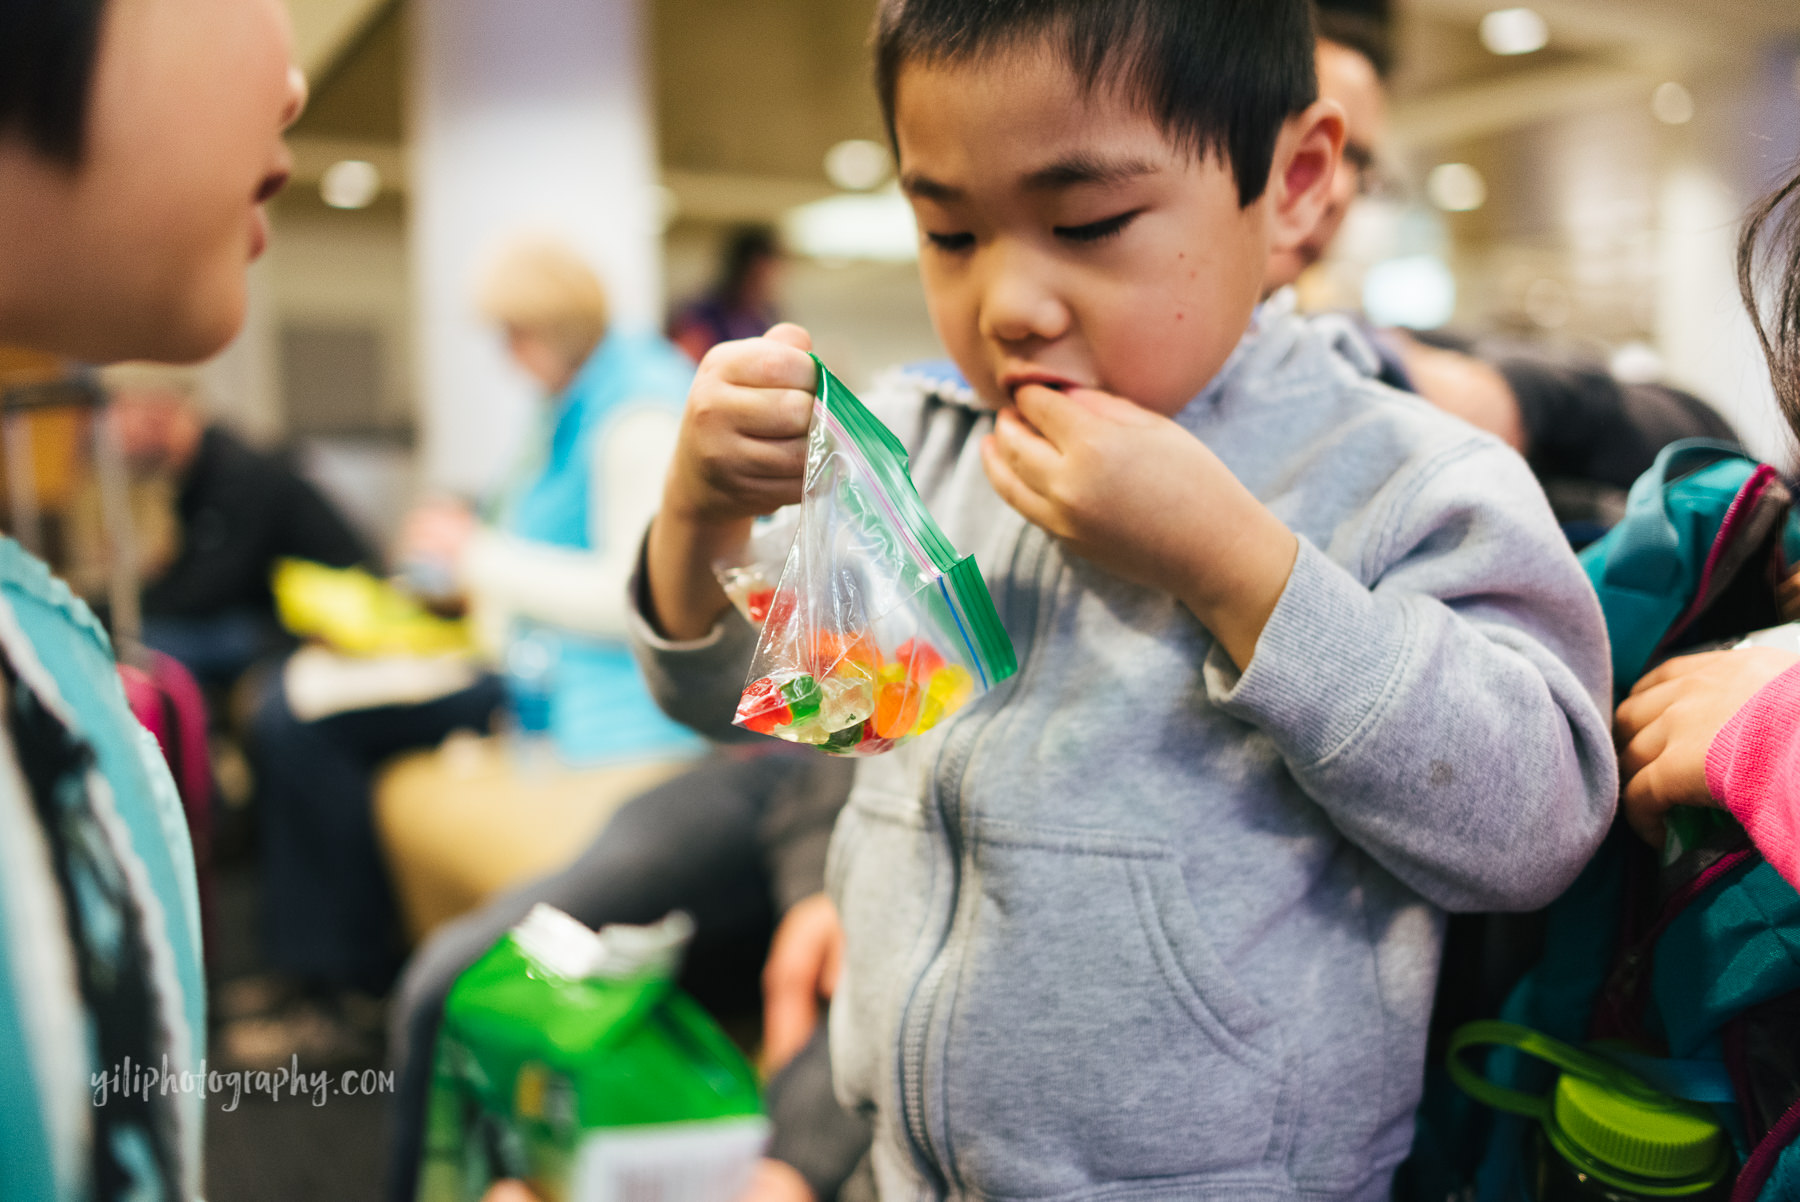 little boy looking in bag of gummy bears